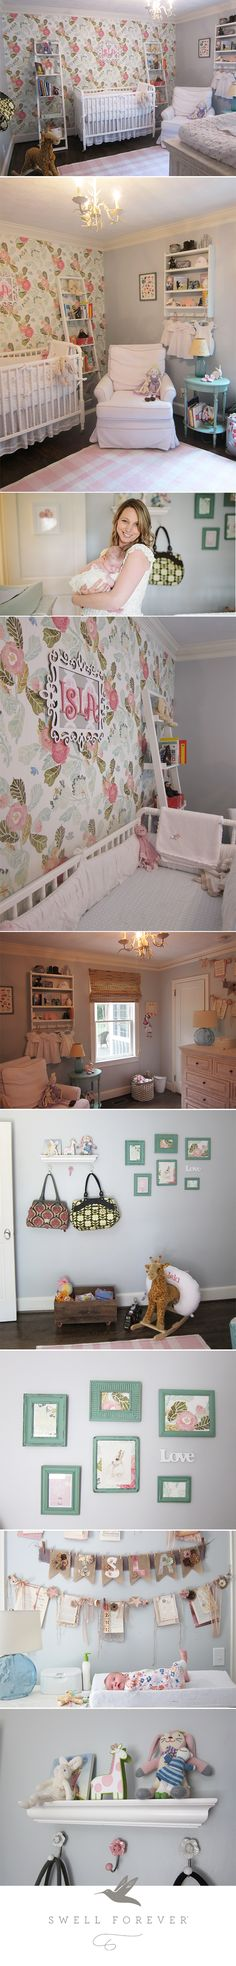 Isla Lane's Entire Nursery. Peonies, Bunnies + White, Teal, Pink and Coral Color Palette. Picture Frame Collage, Diaper Bag Hooks, Anthropologie Wallpaper, Jenny Lind Crib, Serena and Lily Glider, Crate and Barrel Leaning Shelves. Handmade garland and name plaque. Designed by Mom. #swellnursery #swellforever #islalane